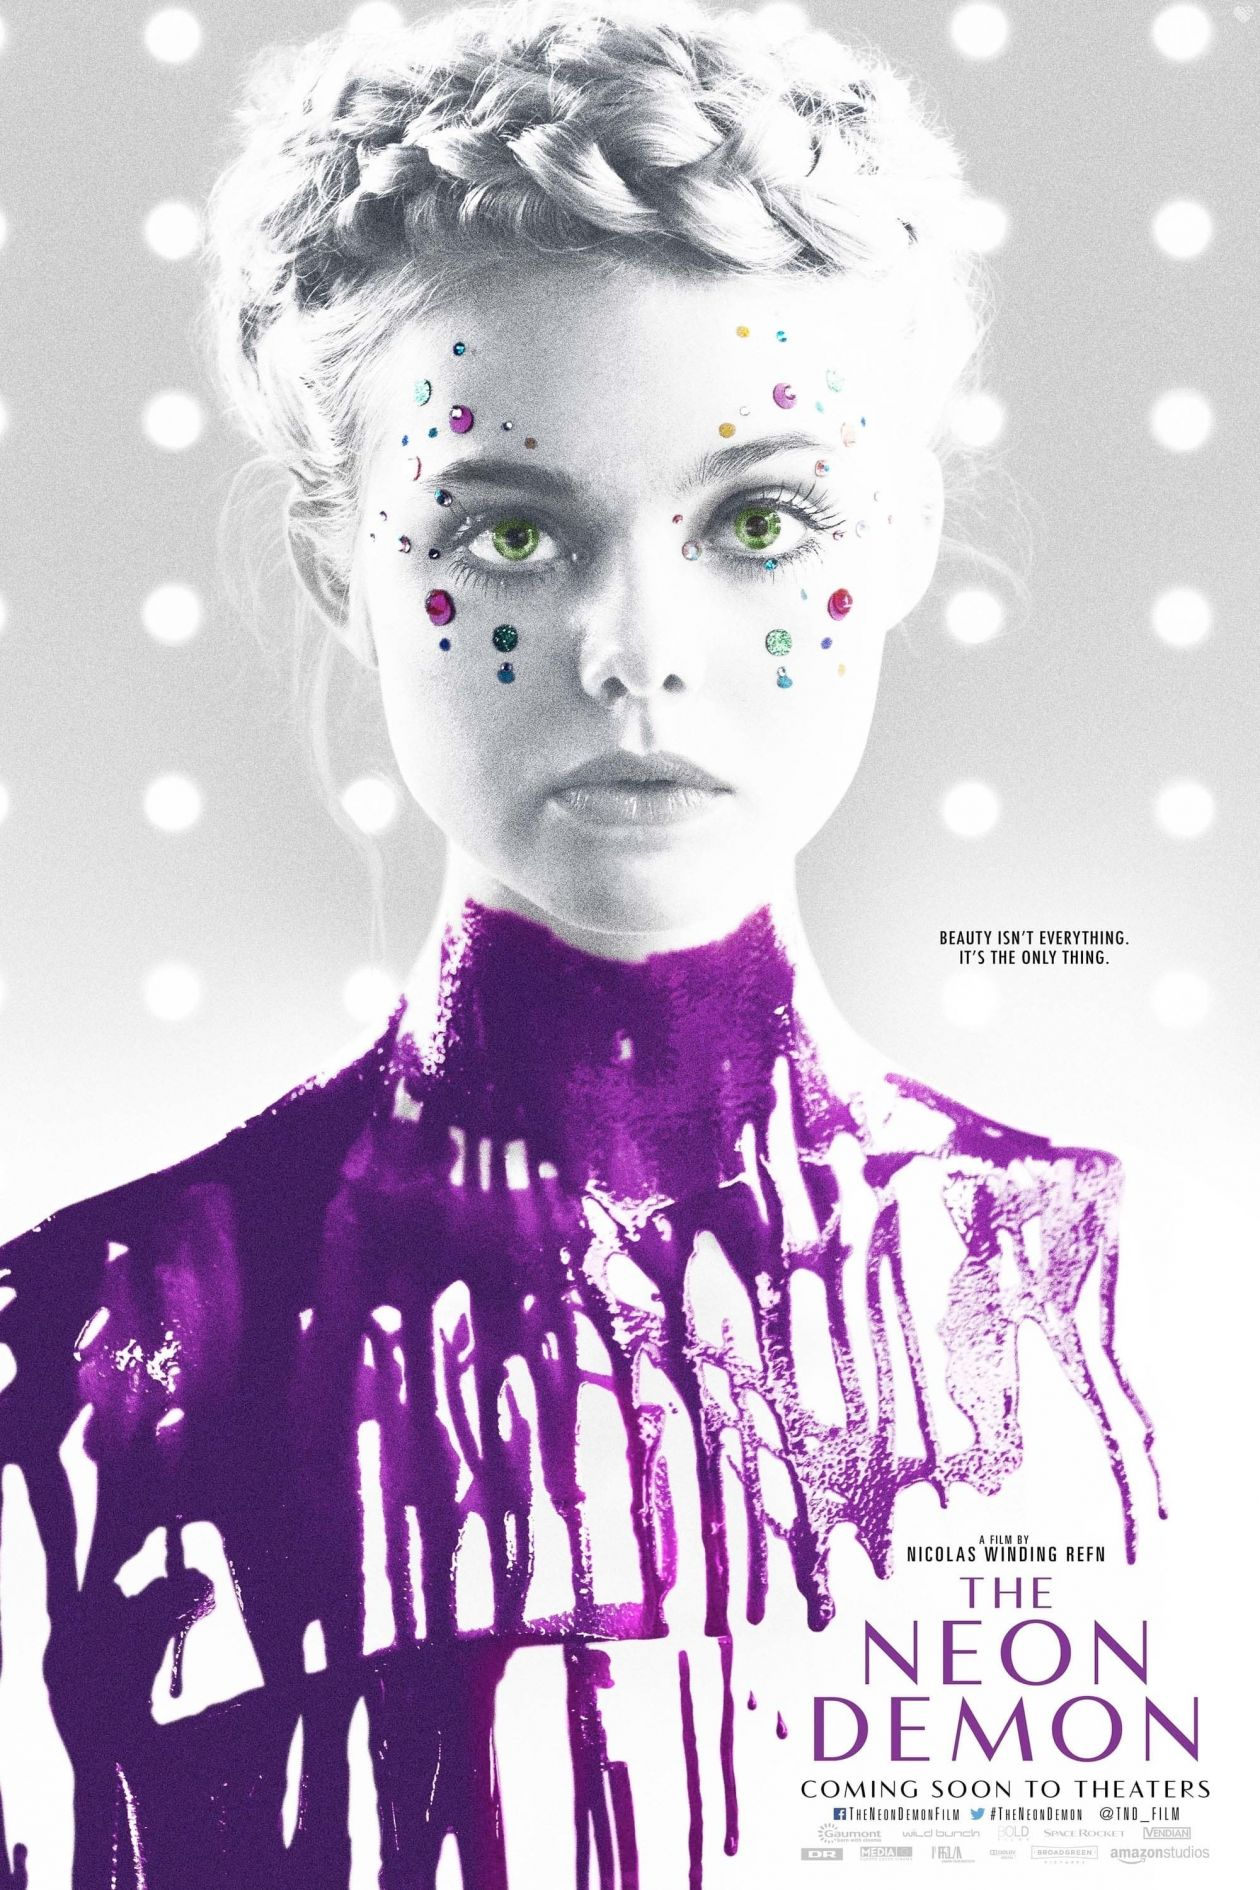 Elle Fanning | The Neon Demon | Nicolas Winding Refn / 2016 Movie Poster / Affiche du film